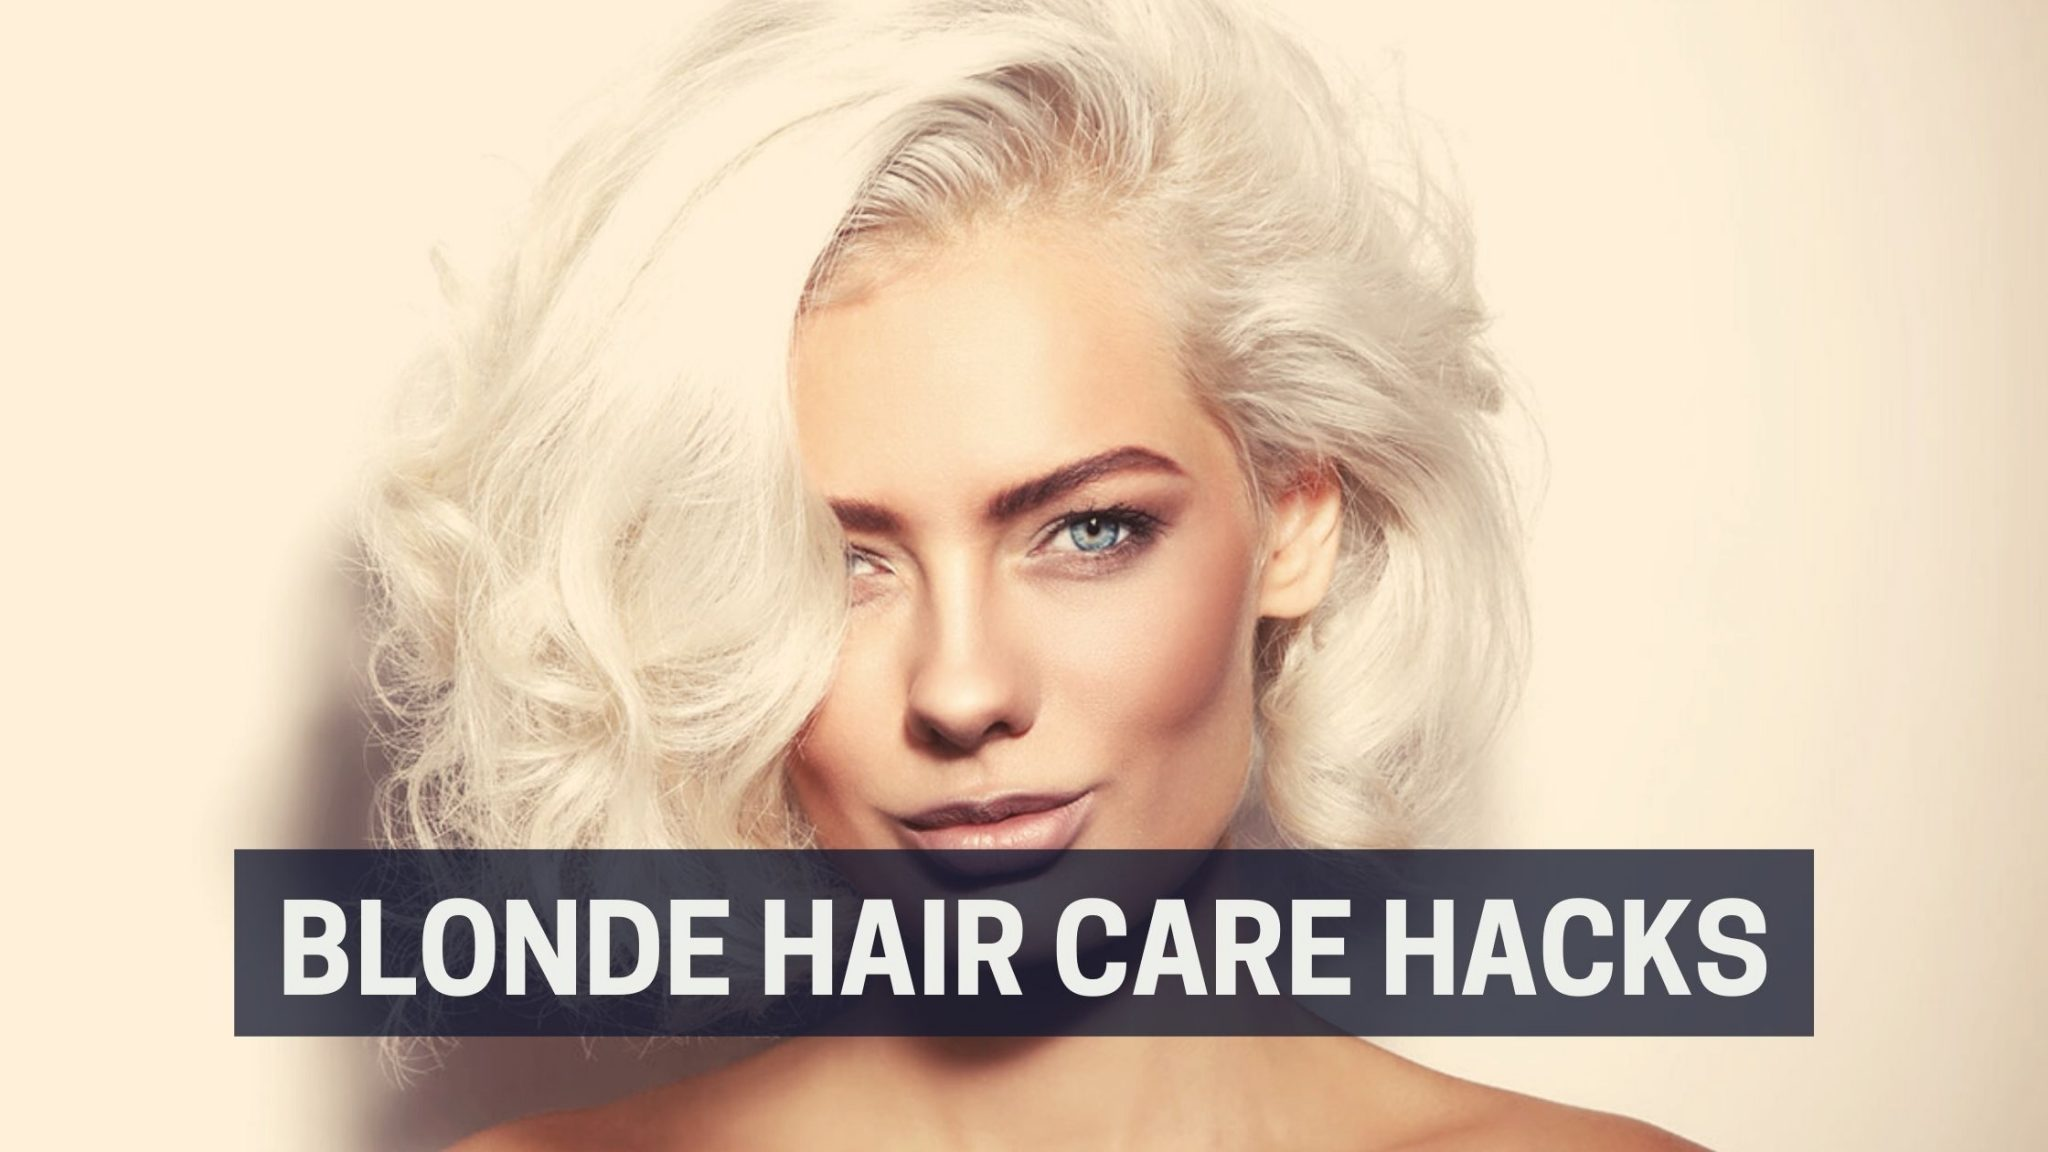 How to keep blonde hair healthy and growing?